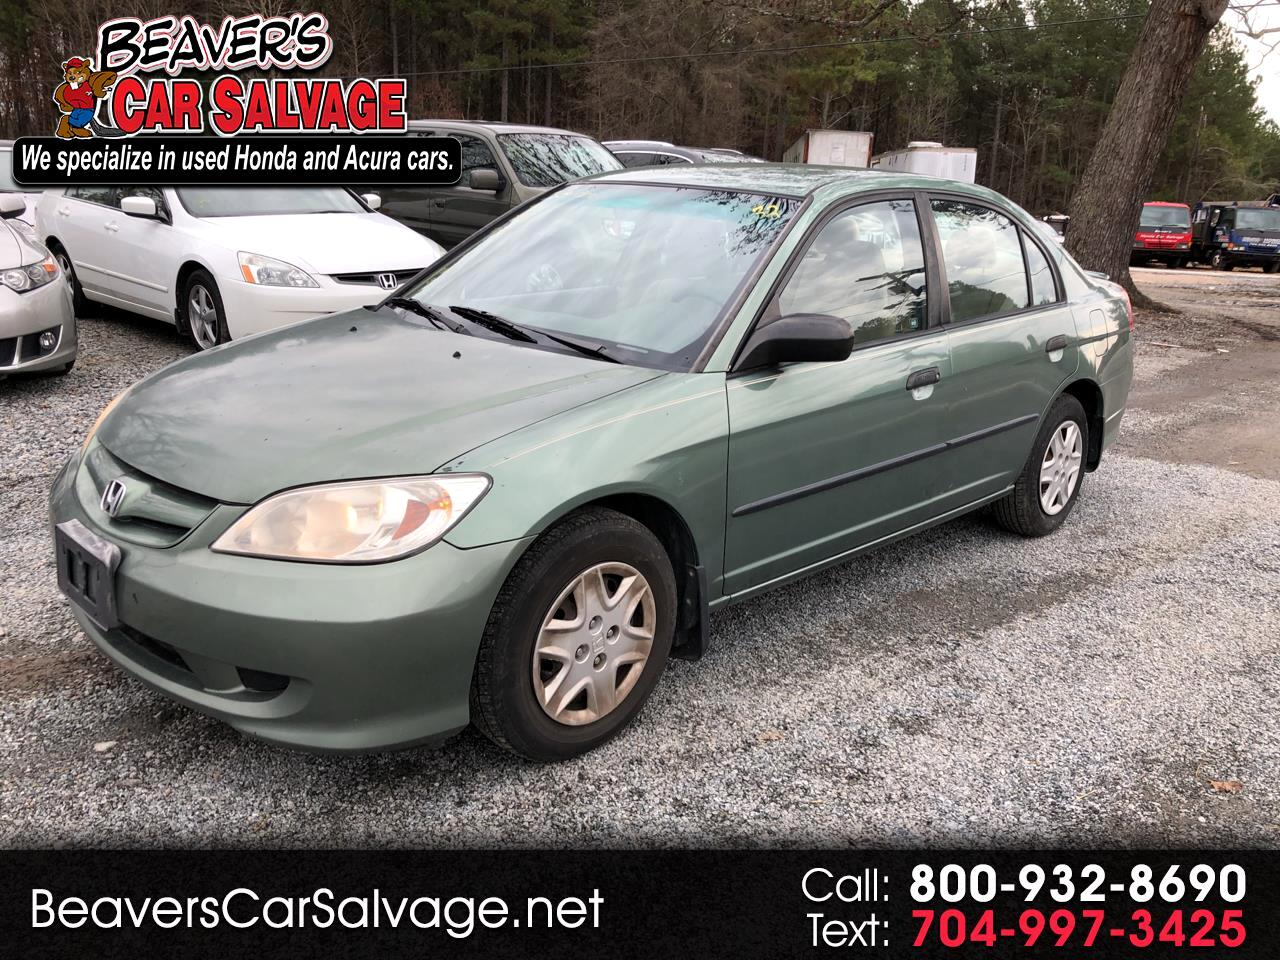 2004 Honda Civic 4dr Sdn VP Auto